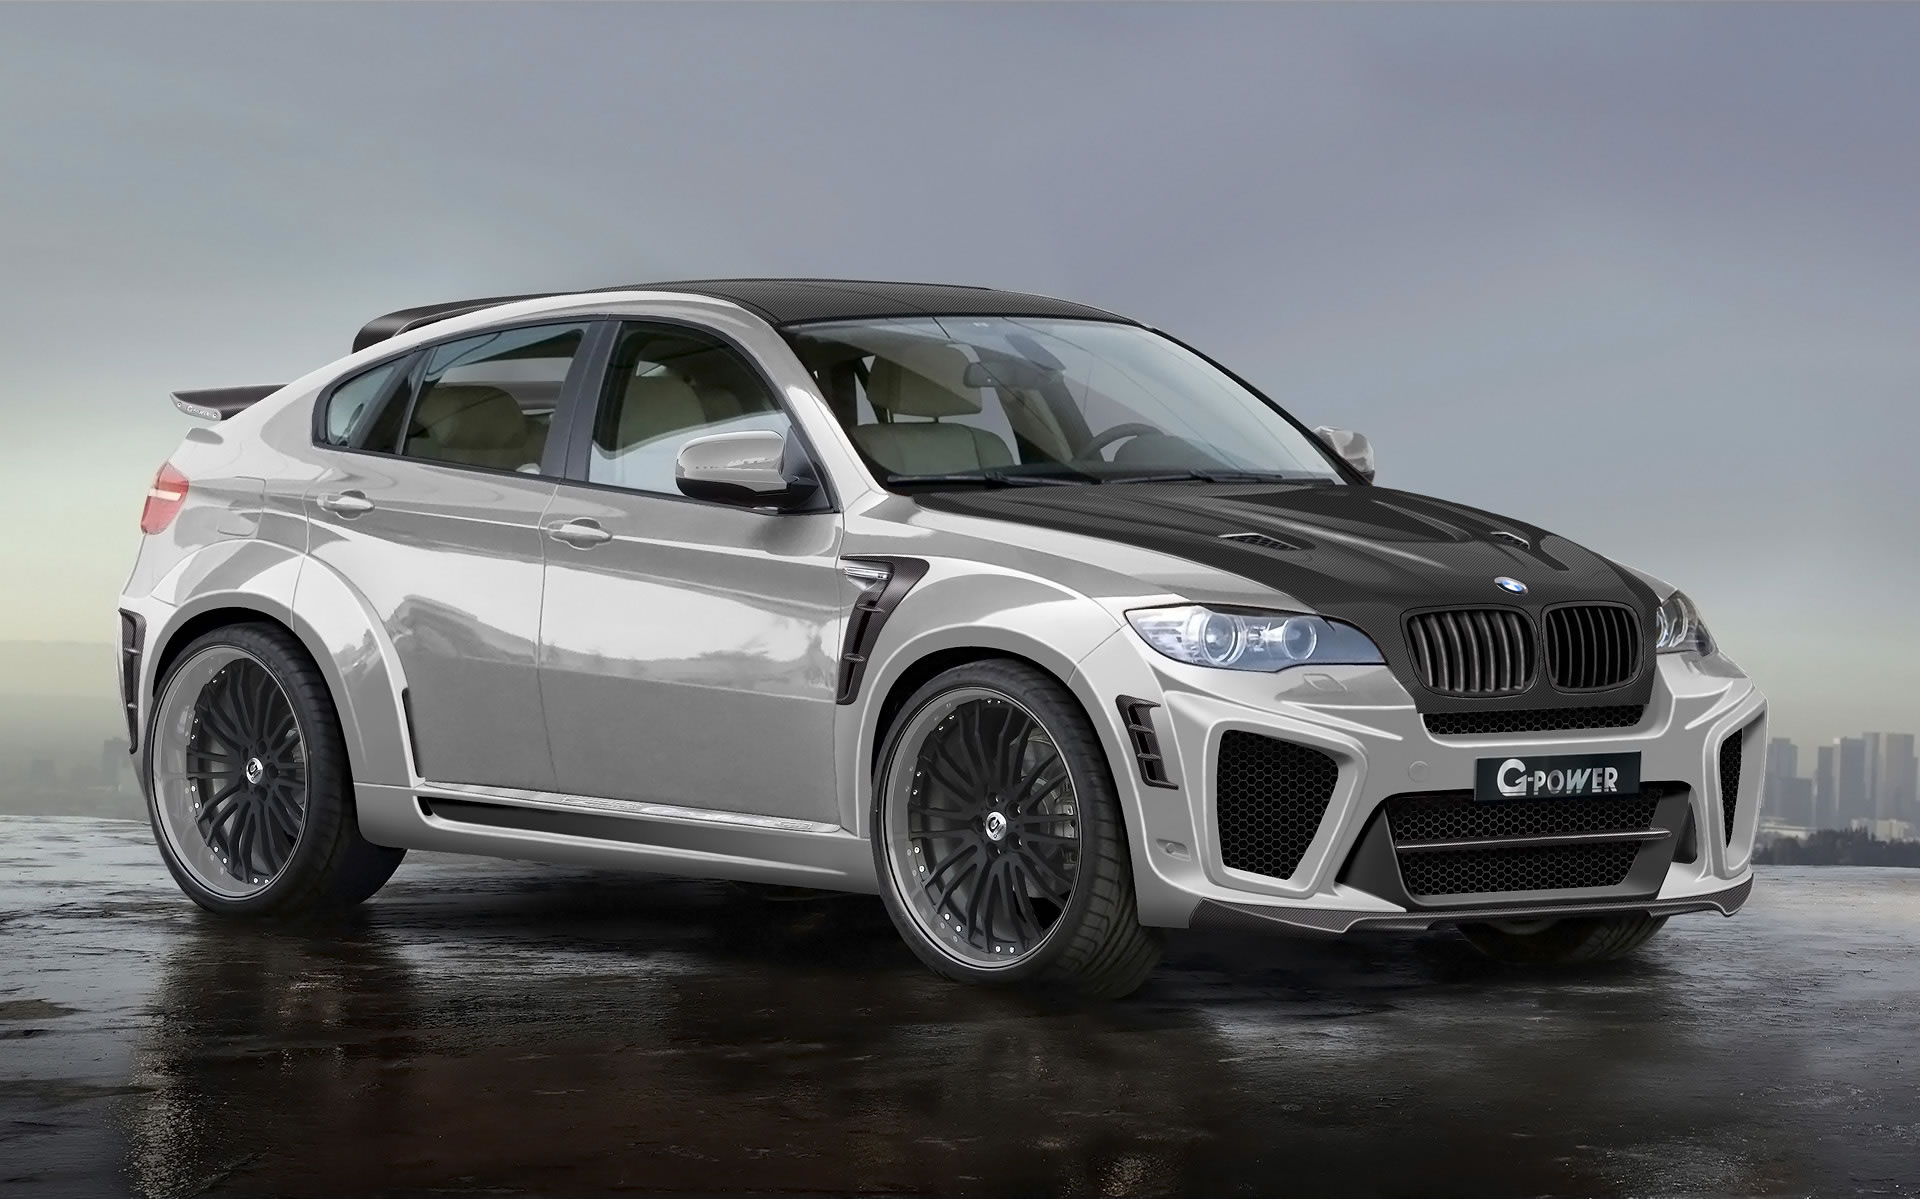 g power bmw x6 typhoon rs ultimate. Black Bedroom Furniture Sets. Home Design Ideas